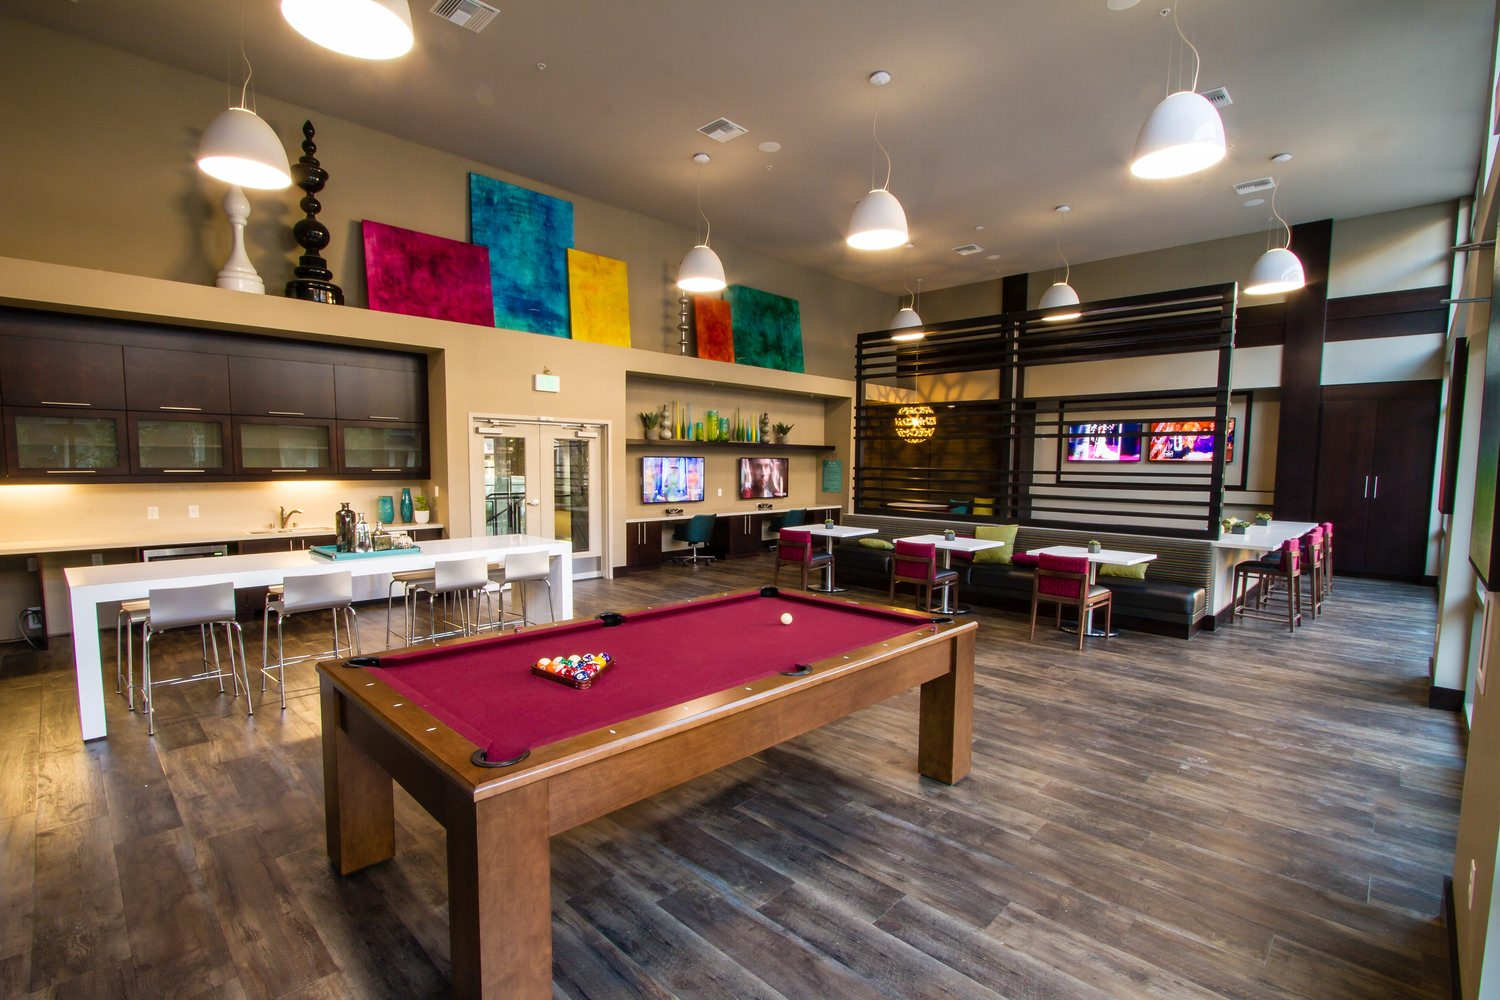 A game room that has a pool table and kitchen table and chairs behind it next to some cabinets.